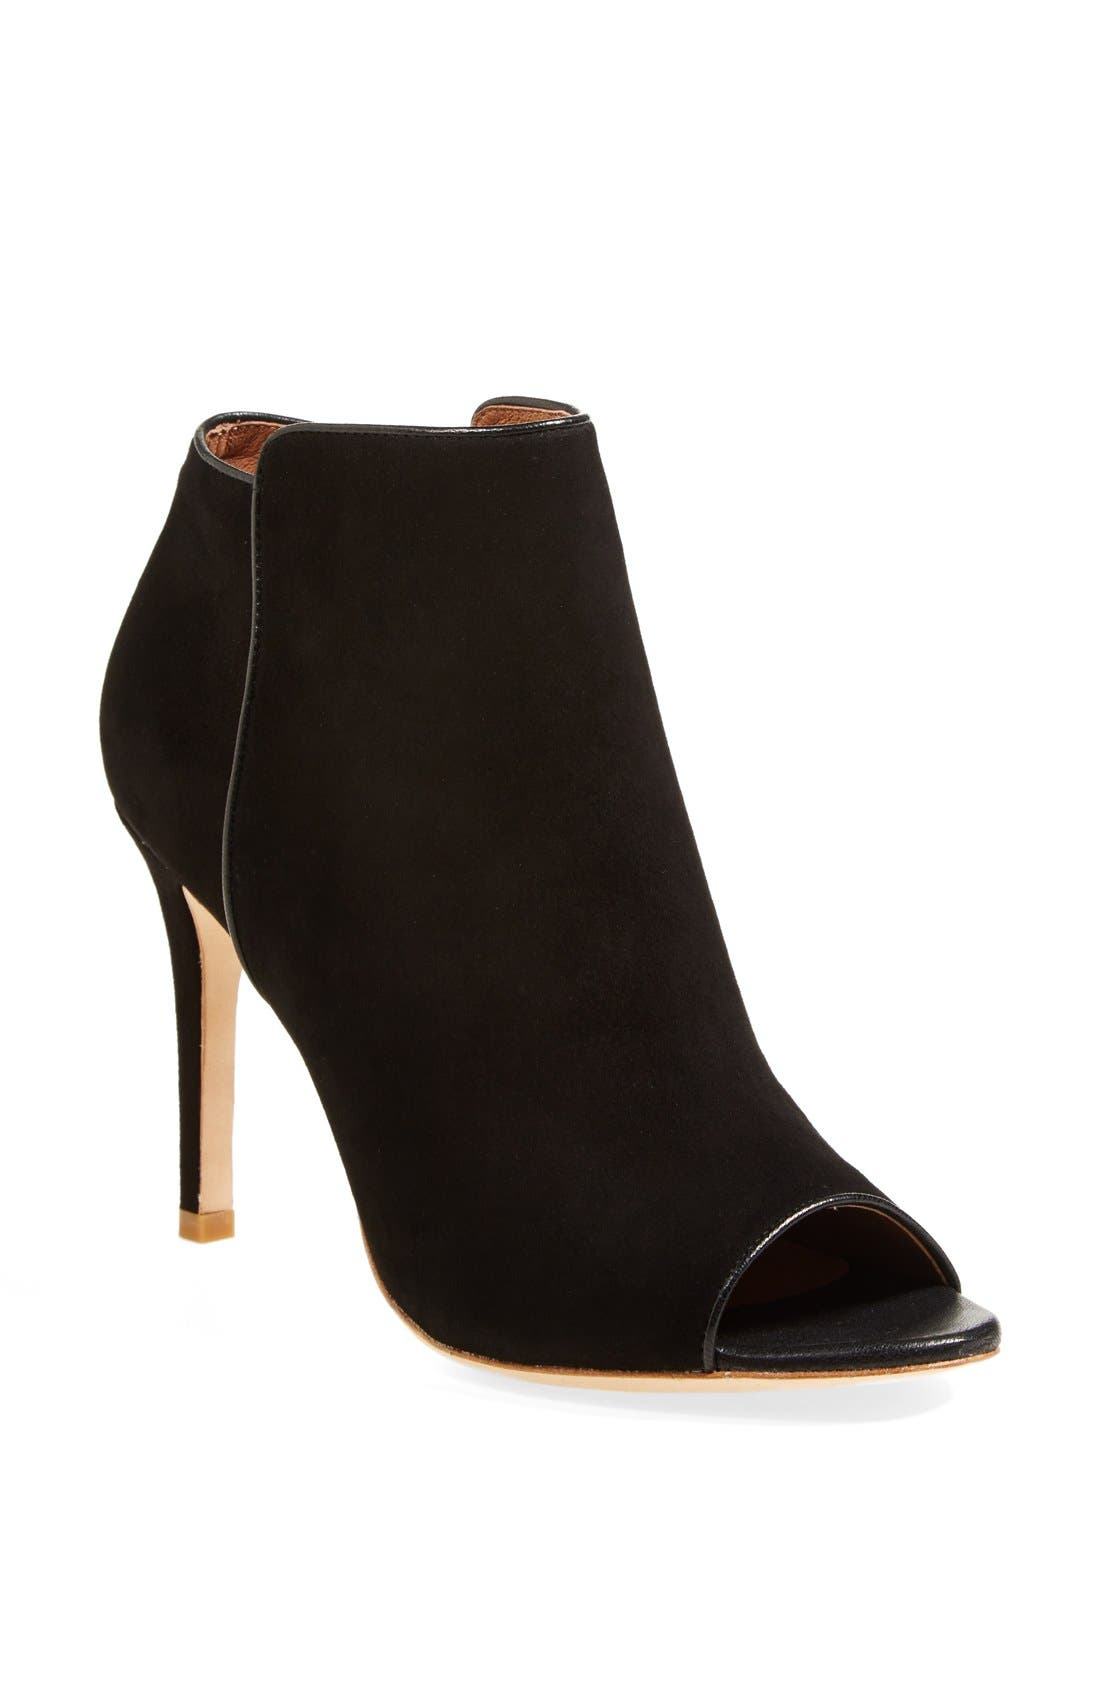 Main Image - Joie 'Gwen' Open Toe Suede Bootie (Nordstrom Exclusive) (Women)